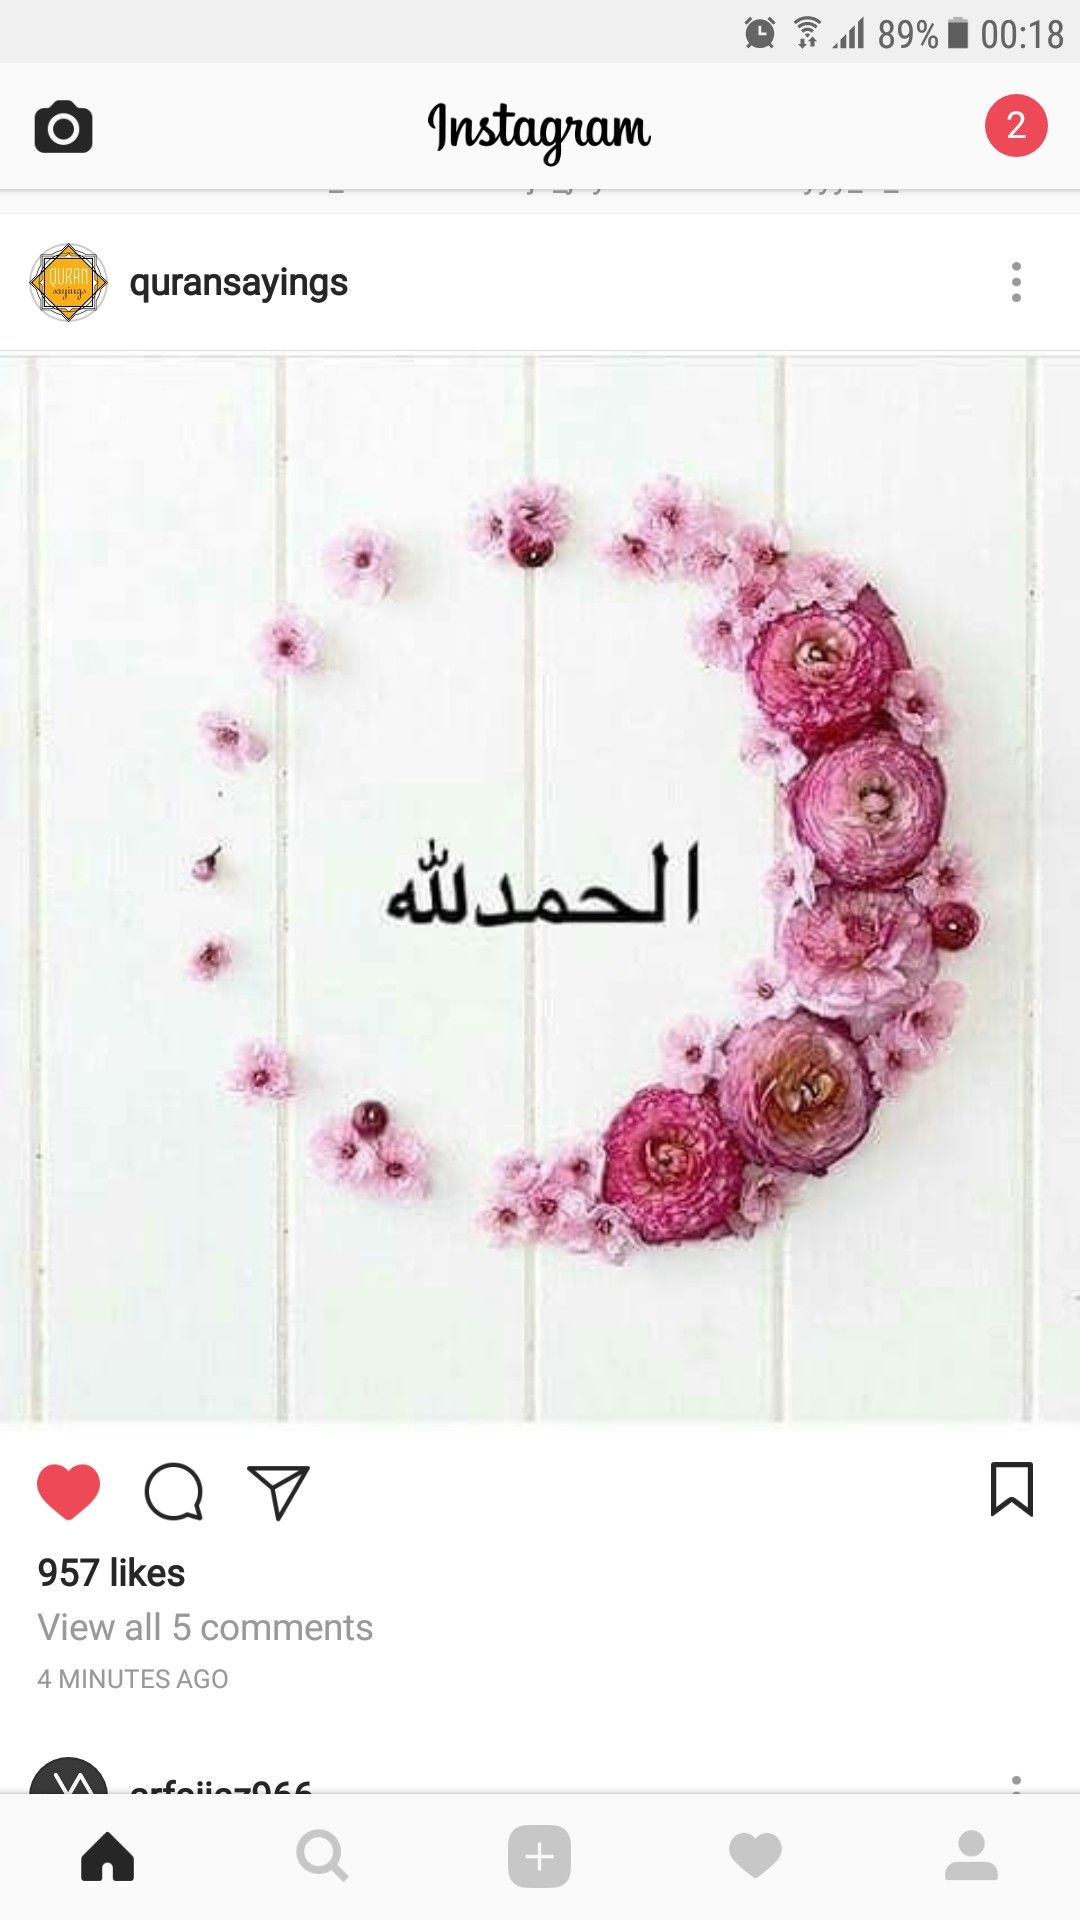 Pin by momina on i pinterest islam alhamdulillah and islamic alhamdulillah islamic lens spiritual spirituality lentils altavistaventures Image collections